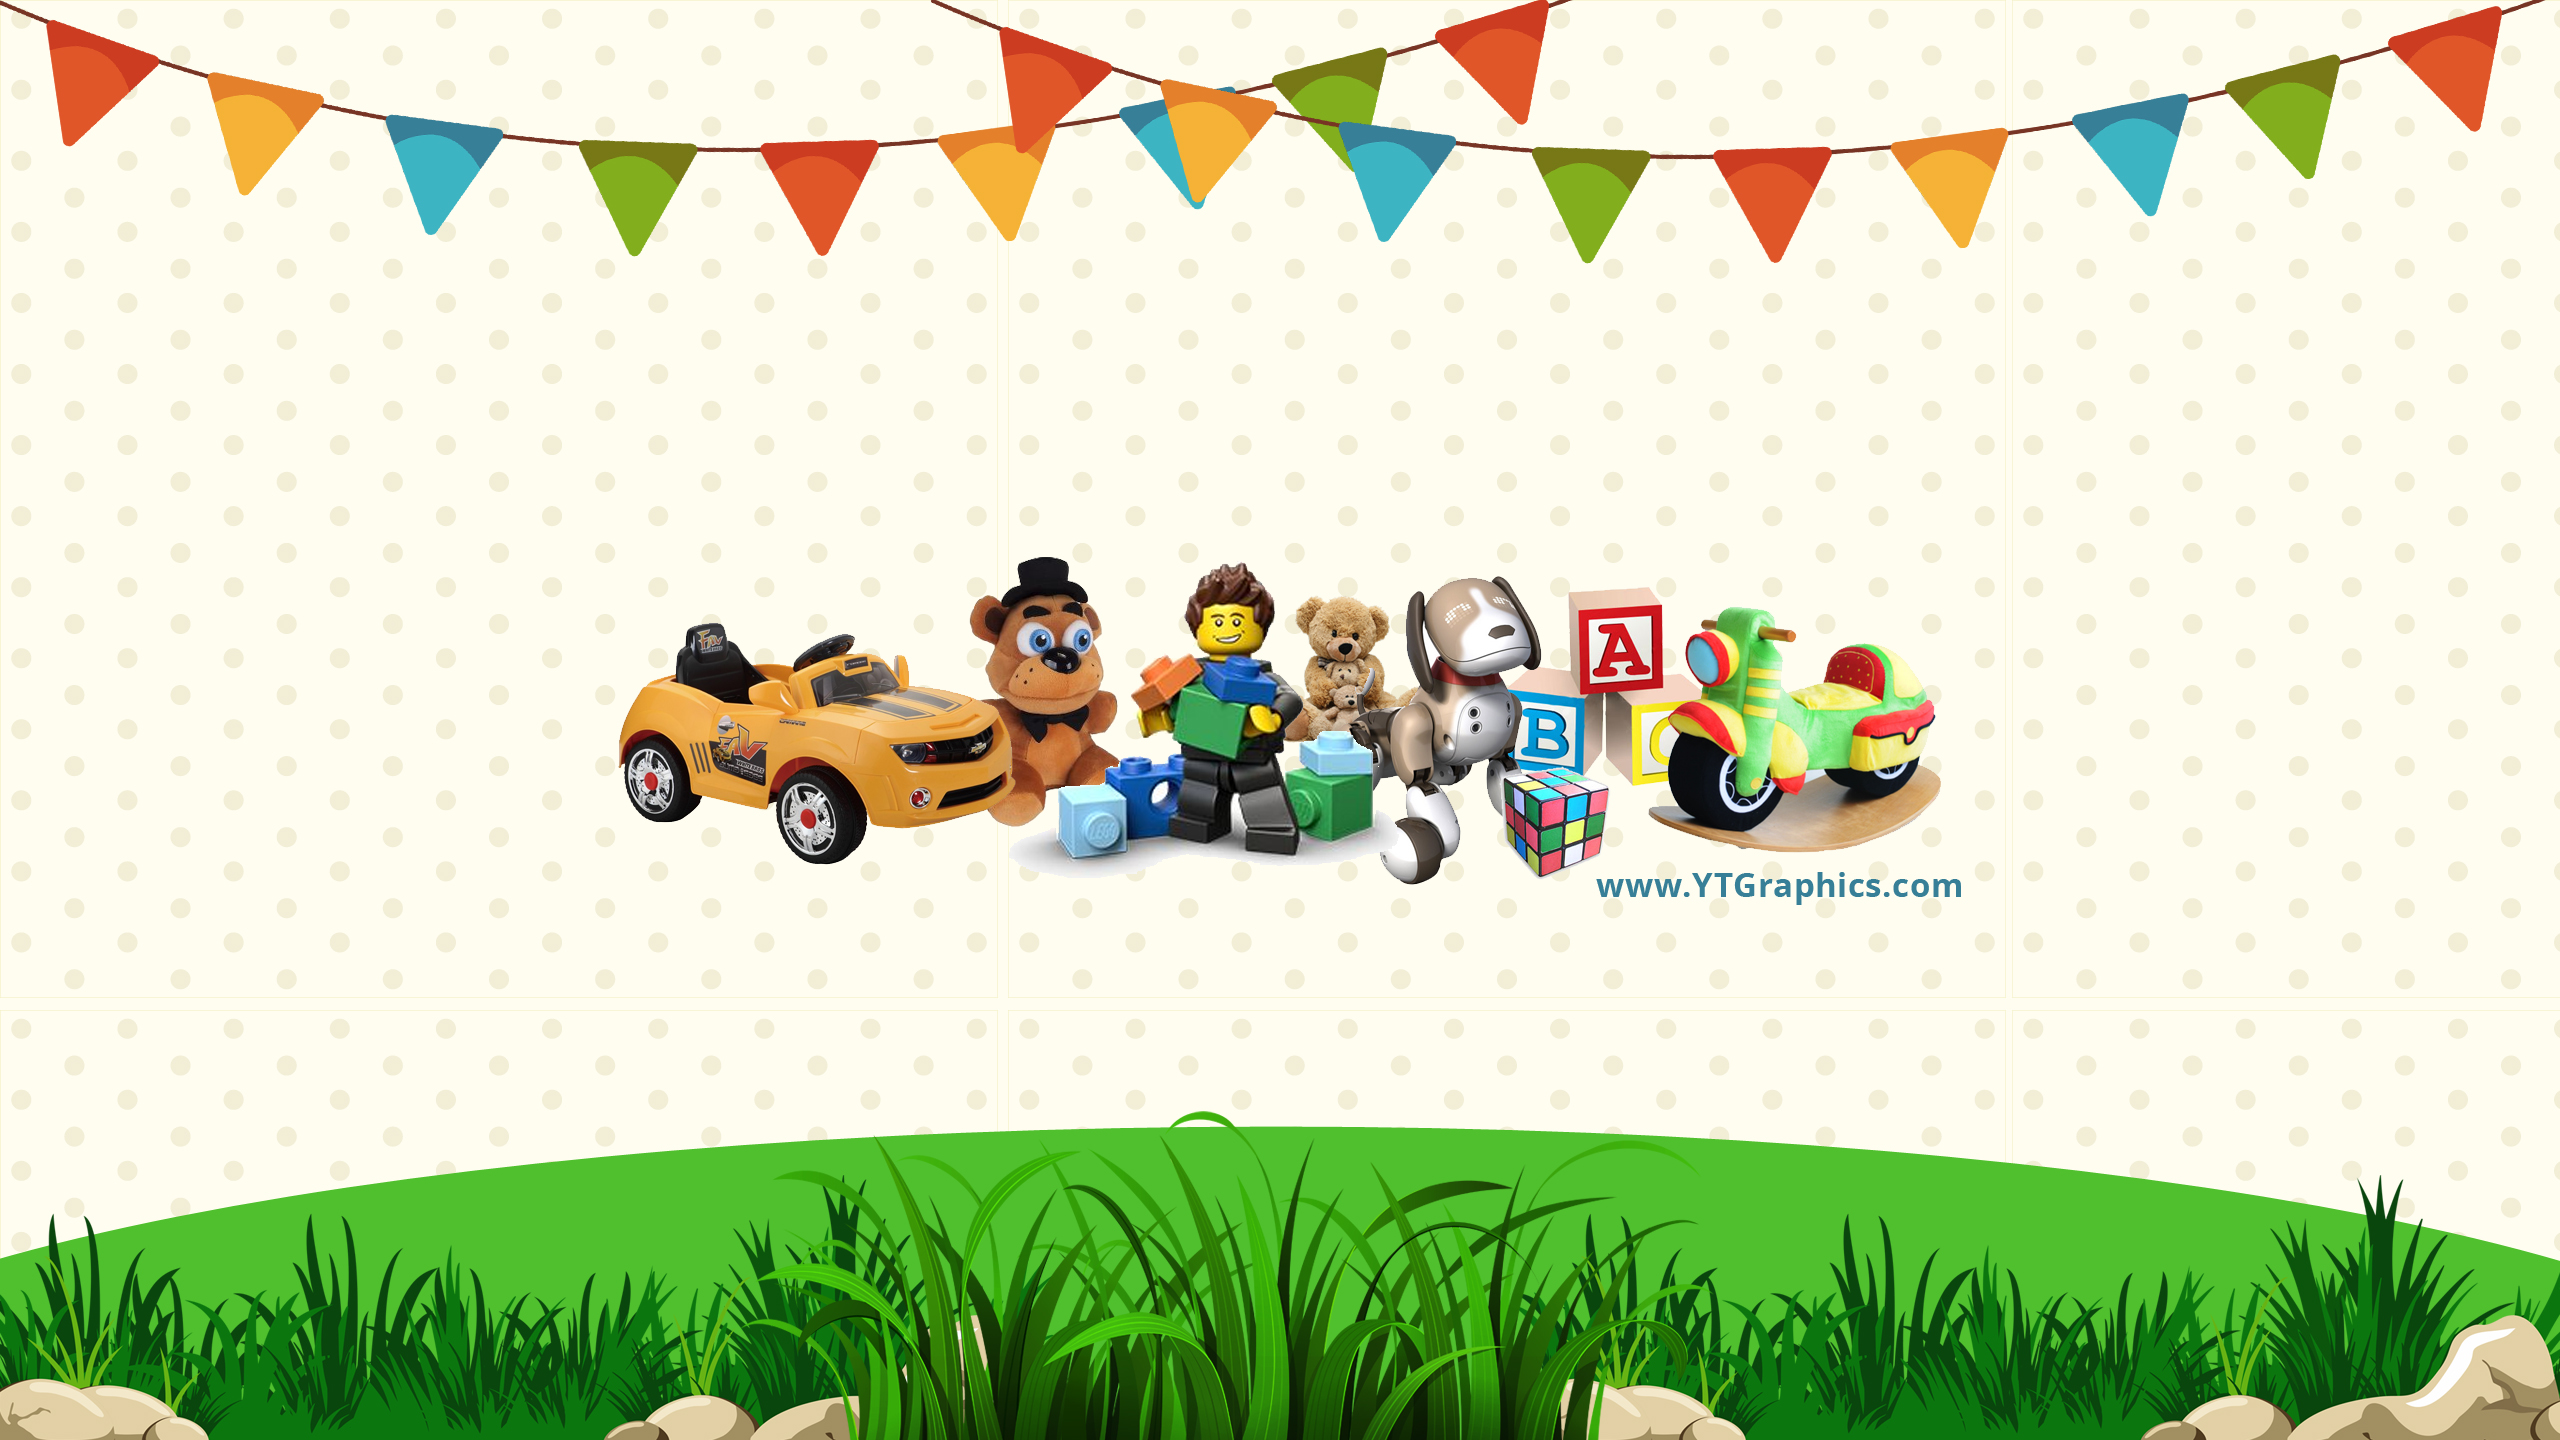 Kids Toys Channel Art Banners